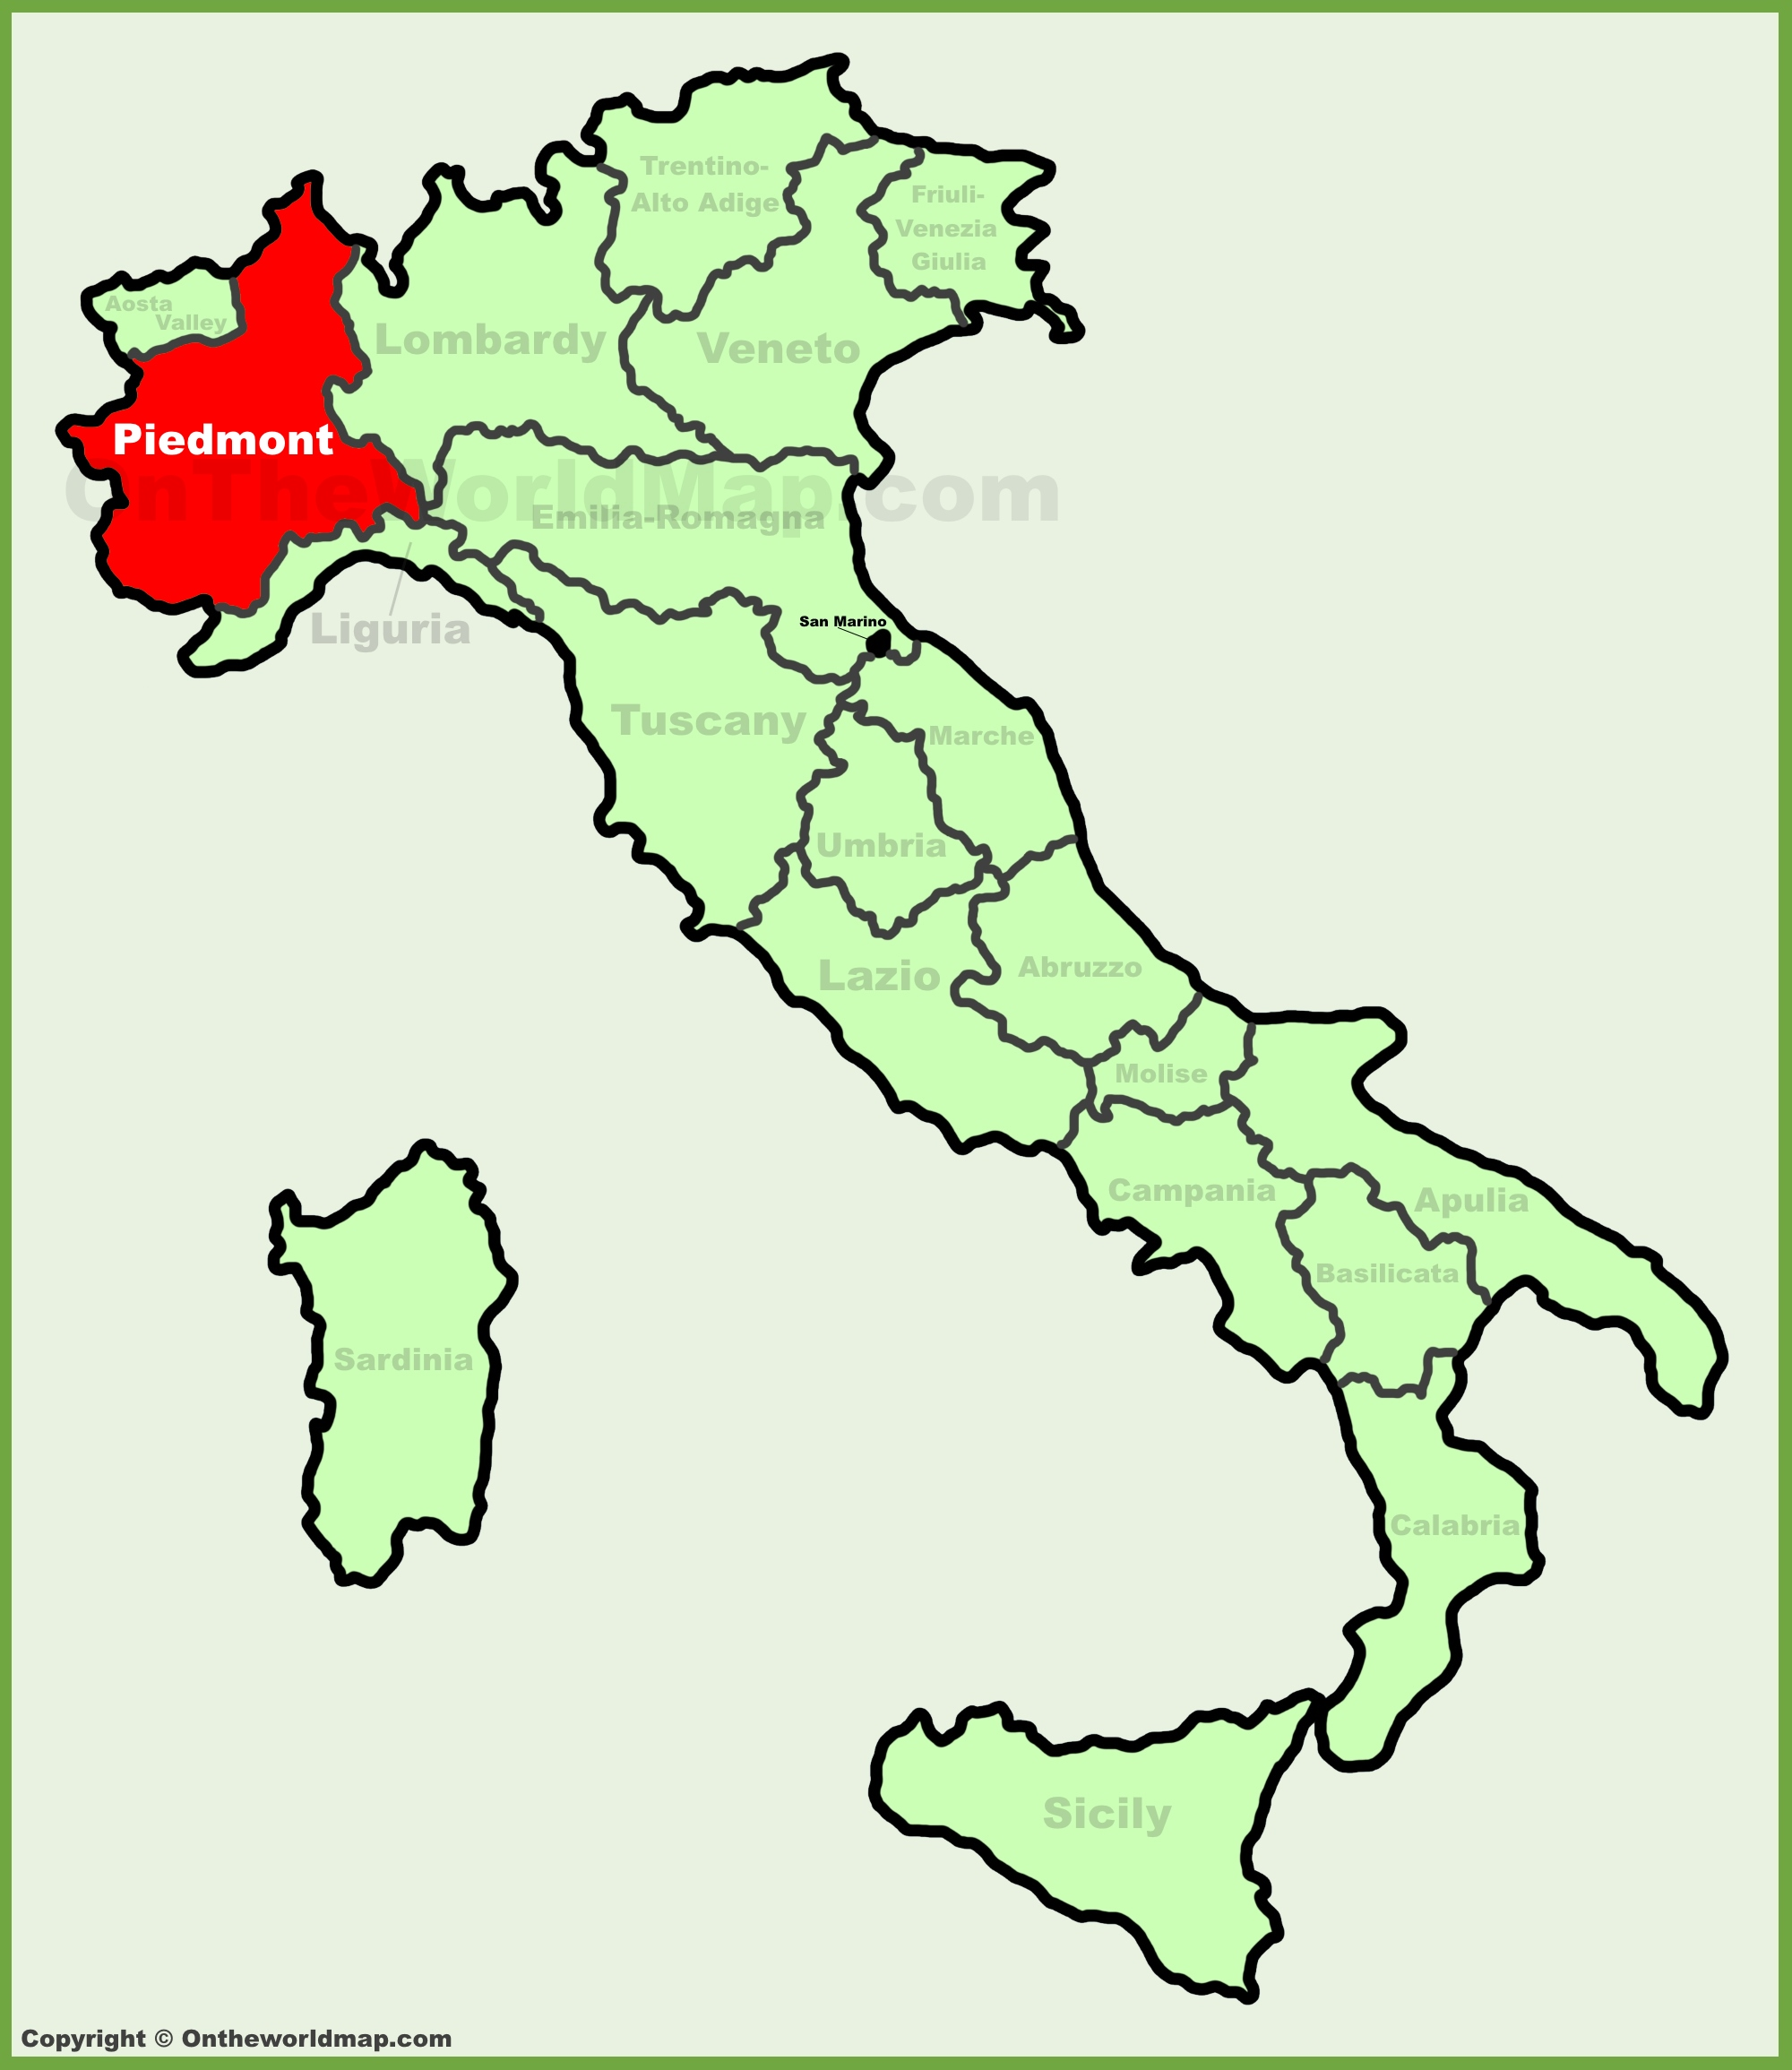 Piedmont Italy Map Piedmont location on the Italy map Piedmont Italy Map